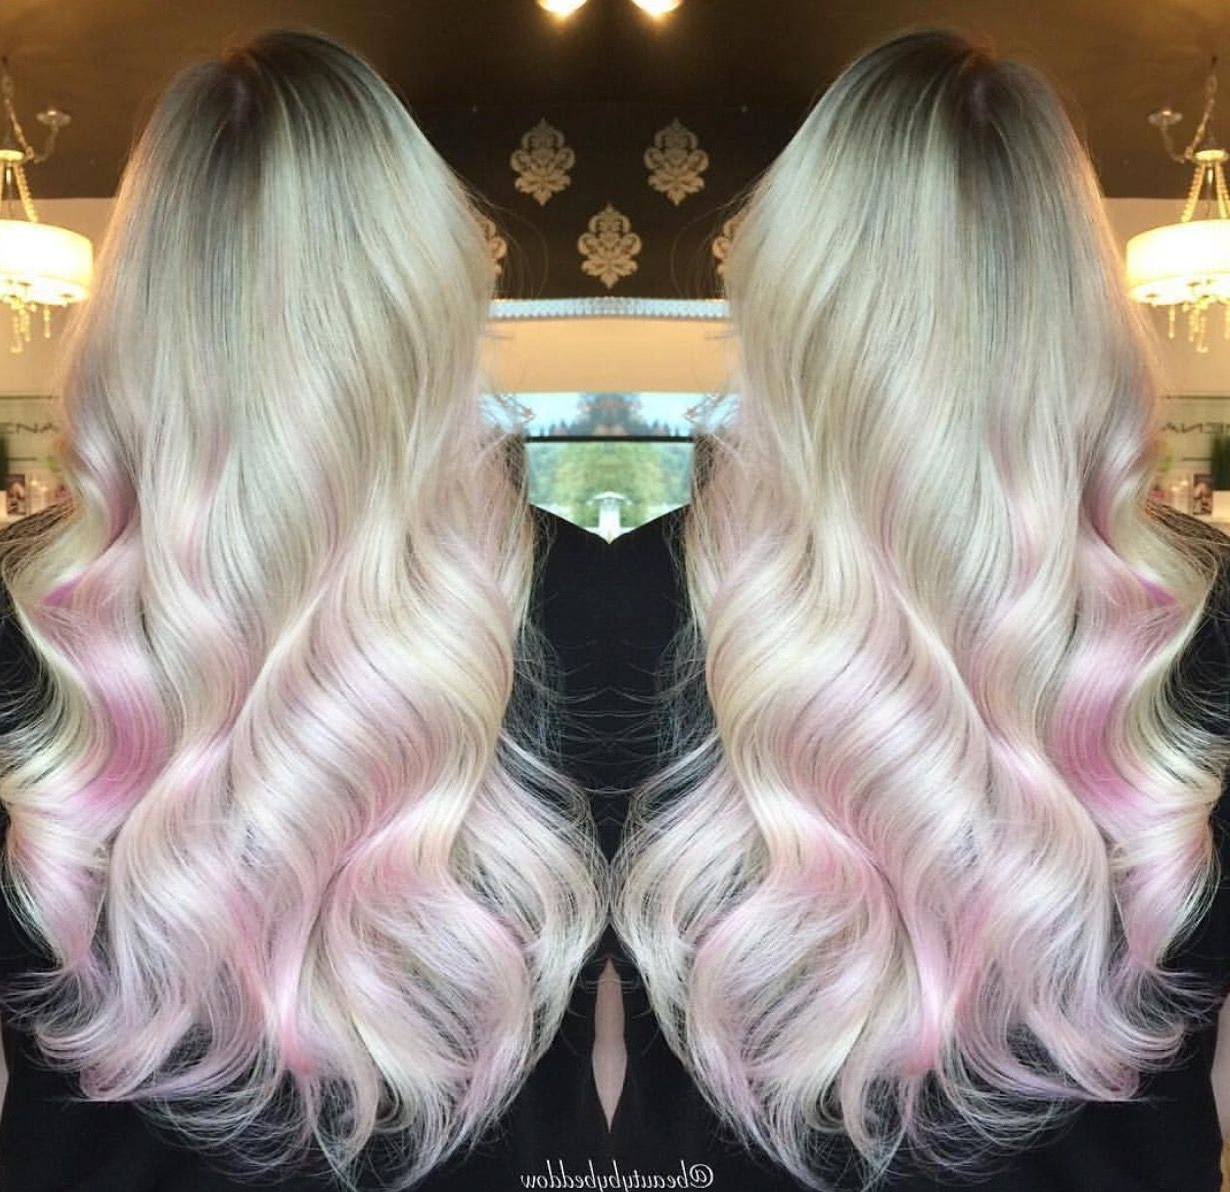 Long Platinum Blonde Locks With Pale Pink Underneath (View 8 of 20)